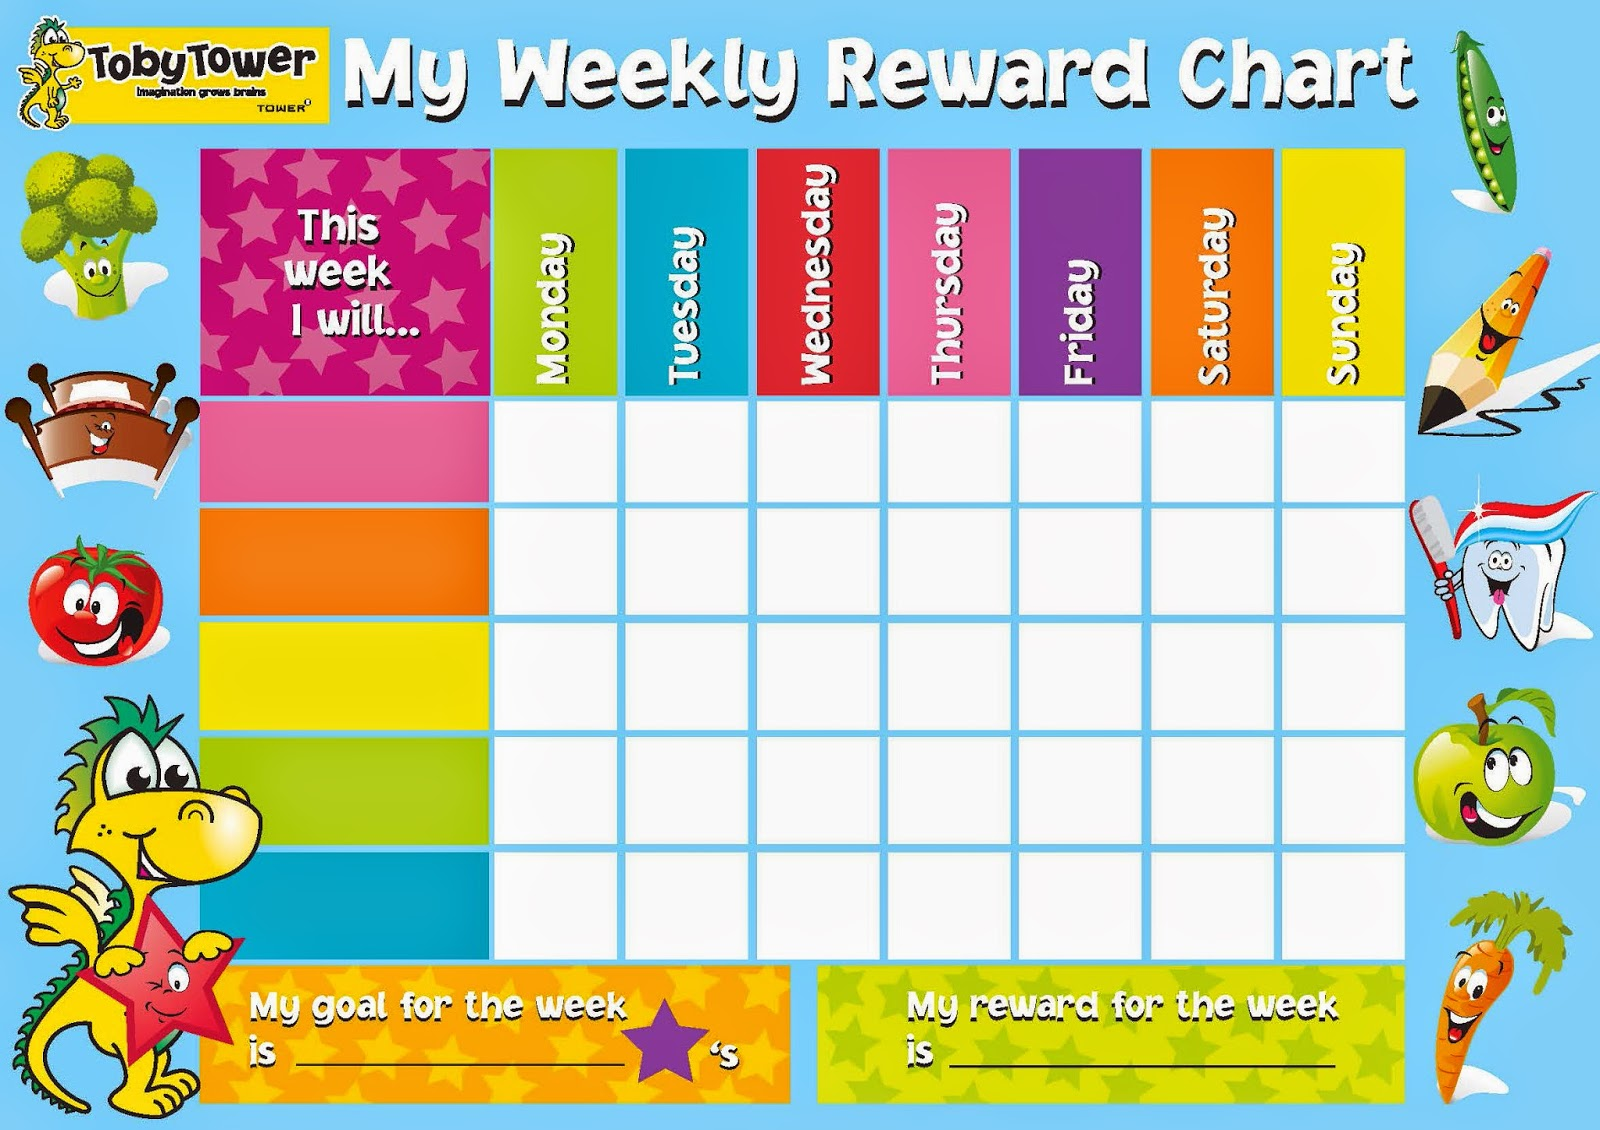 Sally's mummy blog: How to Use a Reward System for Children